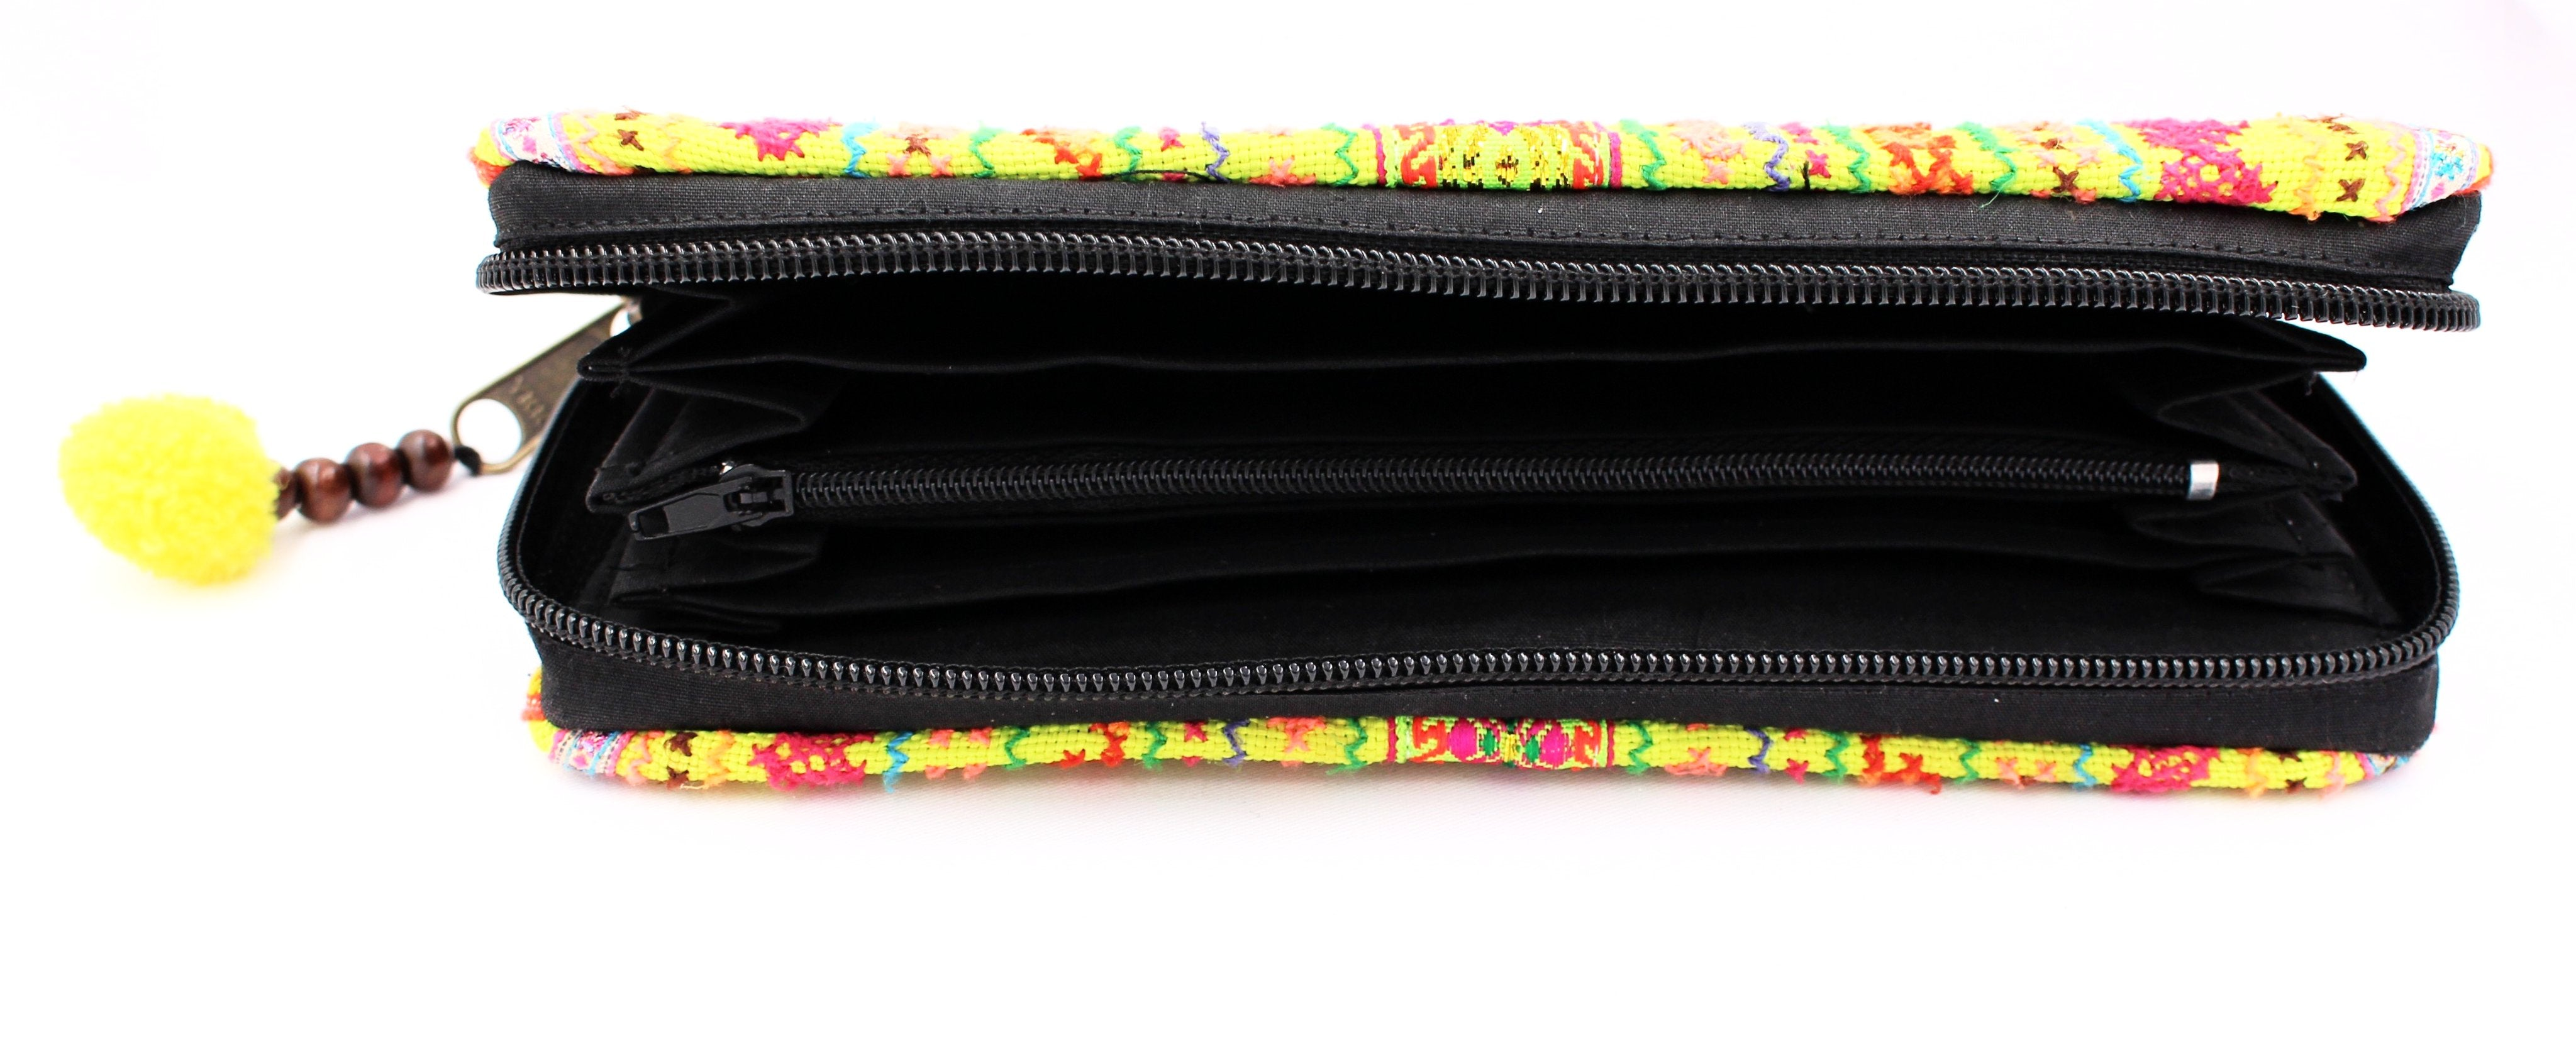 Neon Printed Wallet - Bridges to Borders